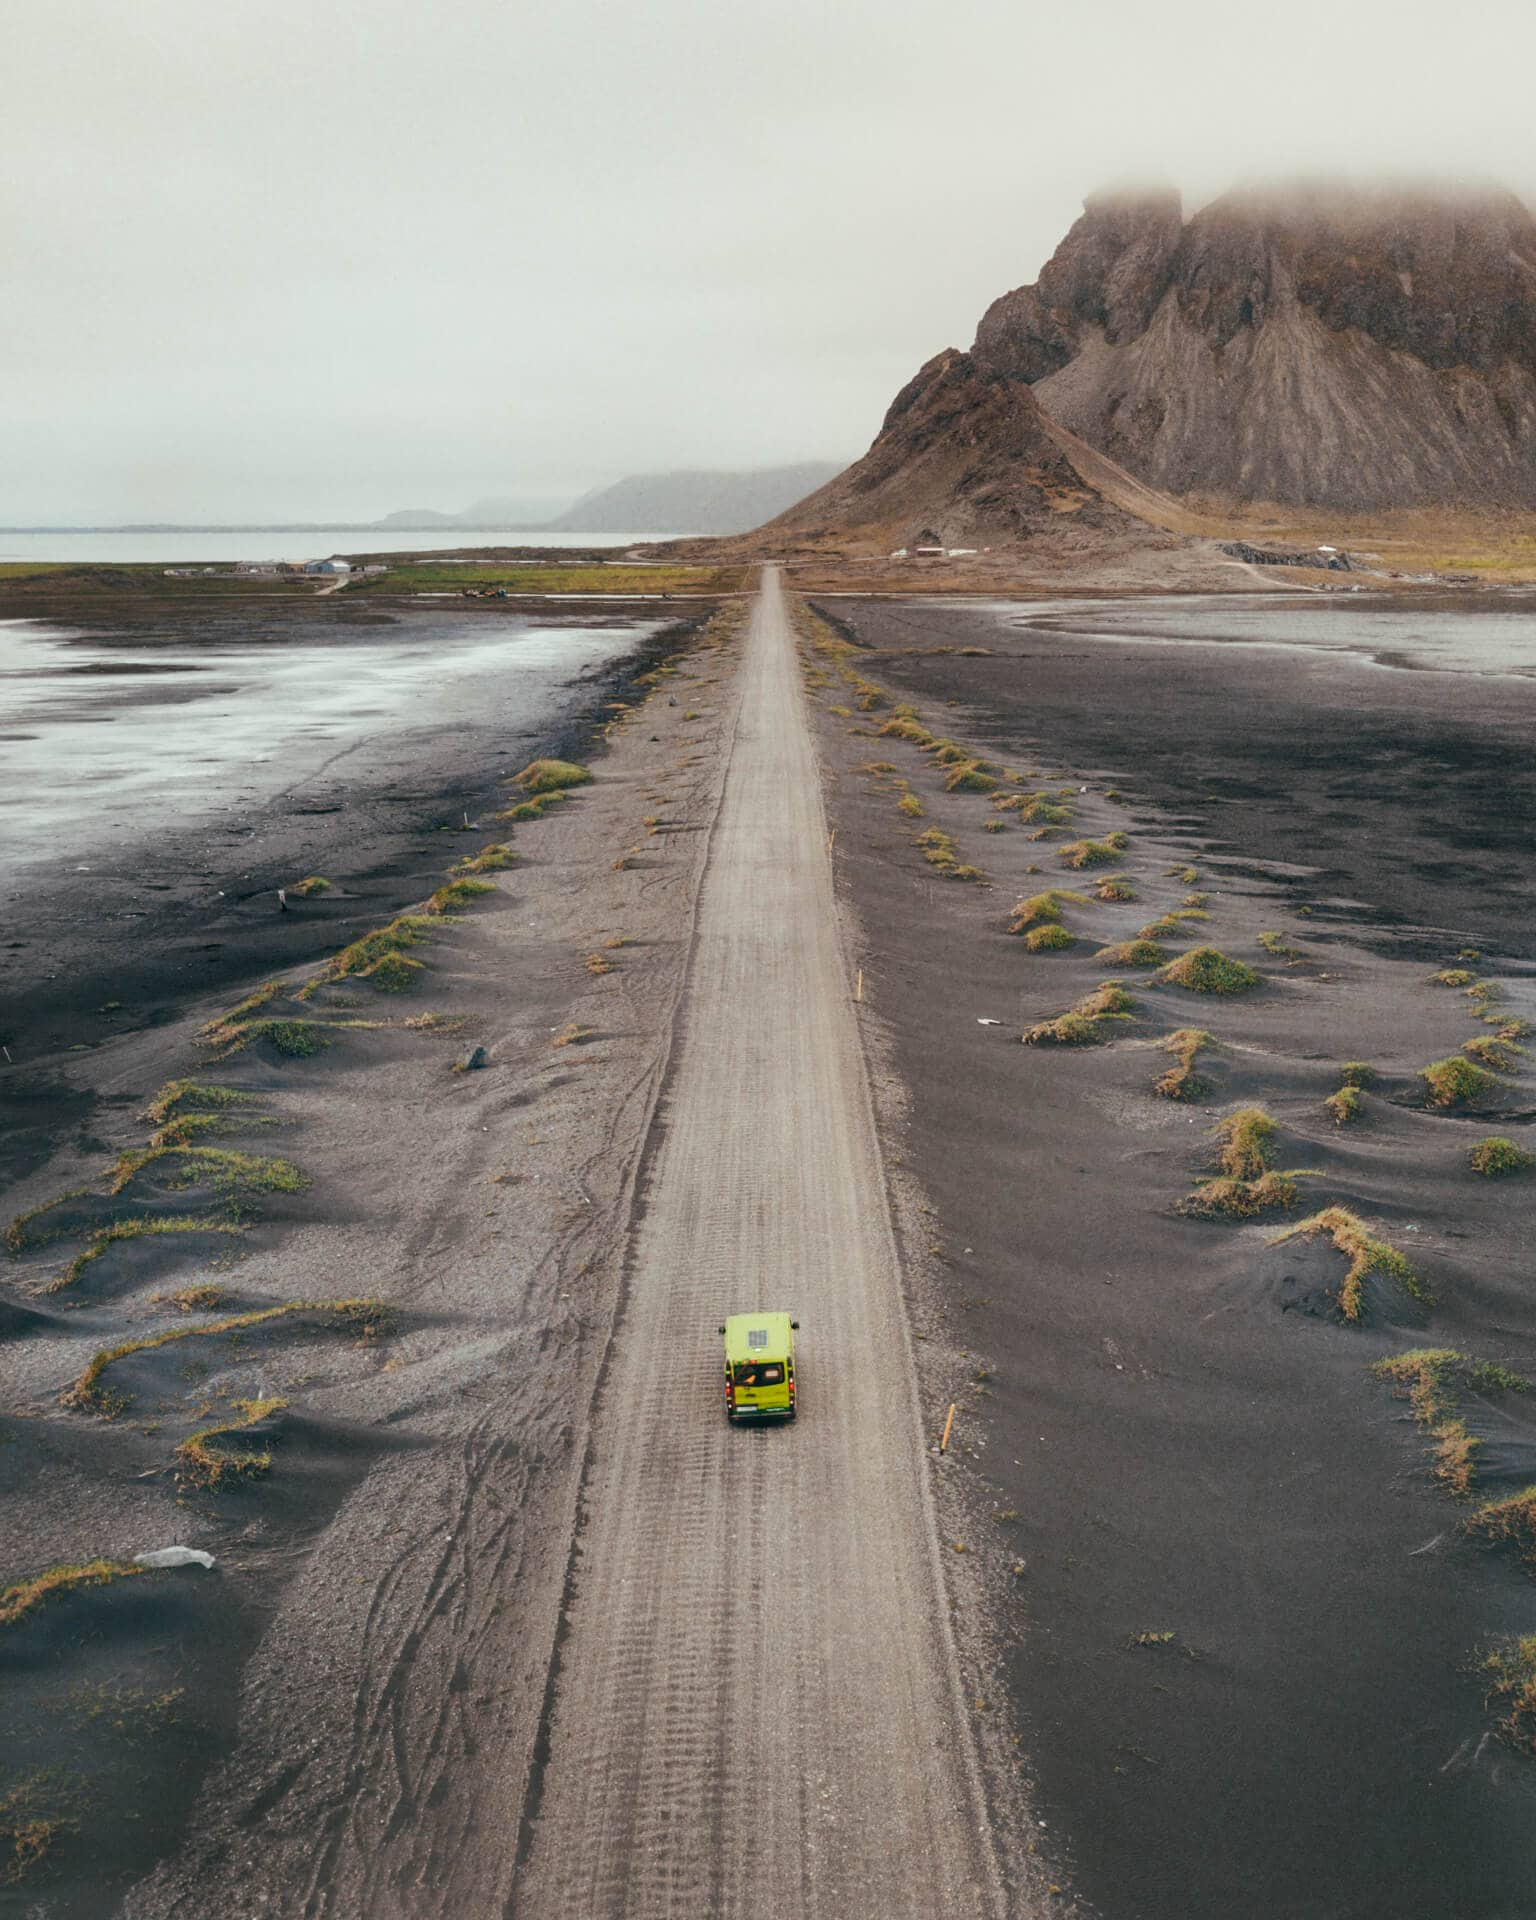 camping in iceland road drone